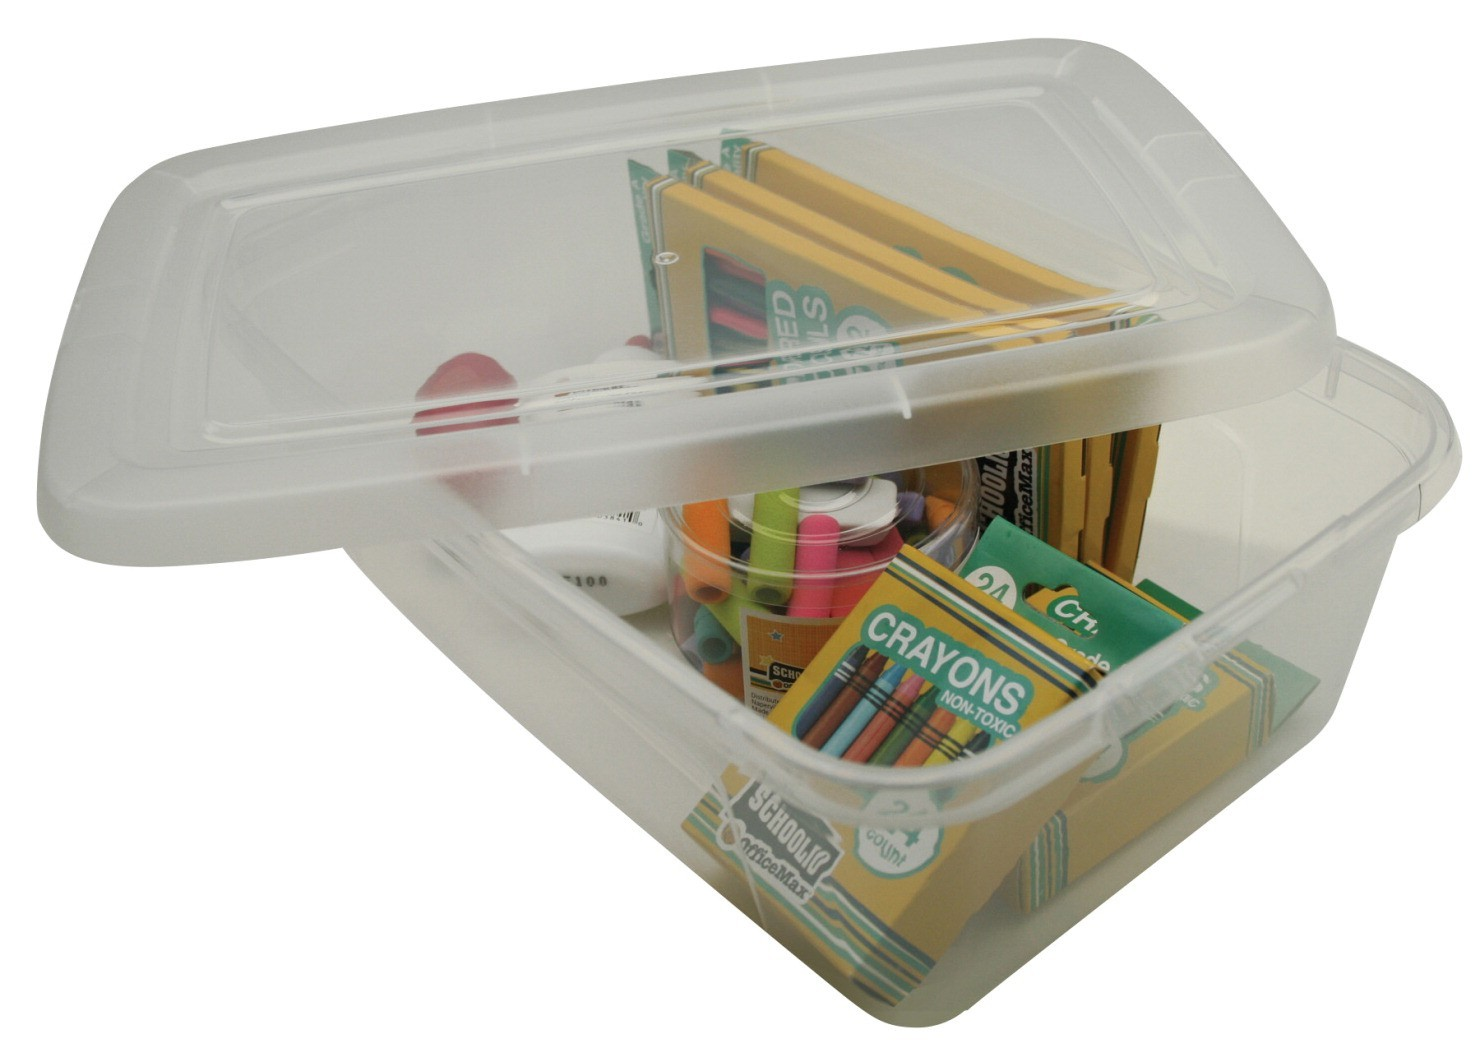 Storage Box 6 Quart Shoe Box 8-5/8in. W x 13-1/2in L x 4-1/2in H